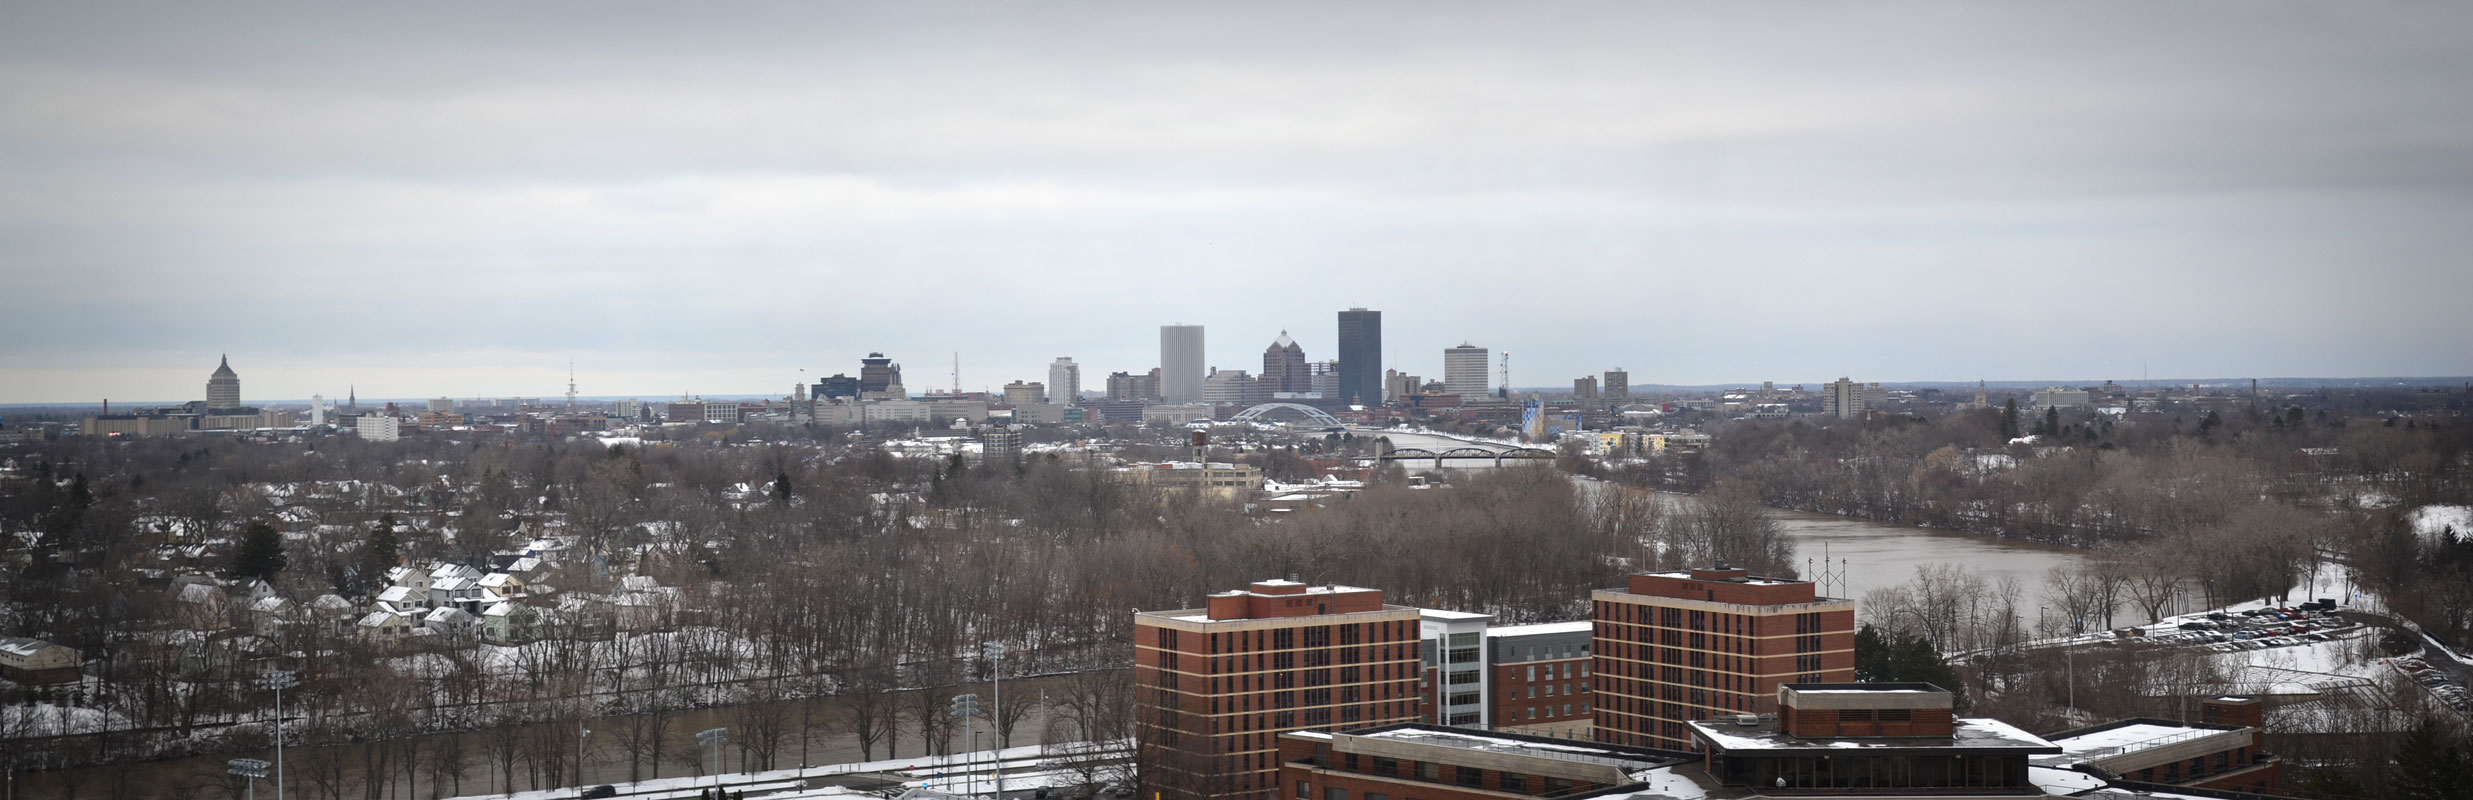 Panorama view of Rochester skyline from top of University of Rochester Rush Rhees Library. [PHOTO: RochesterSubway.com]